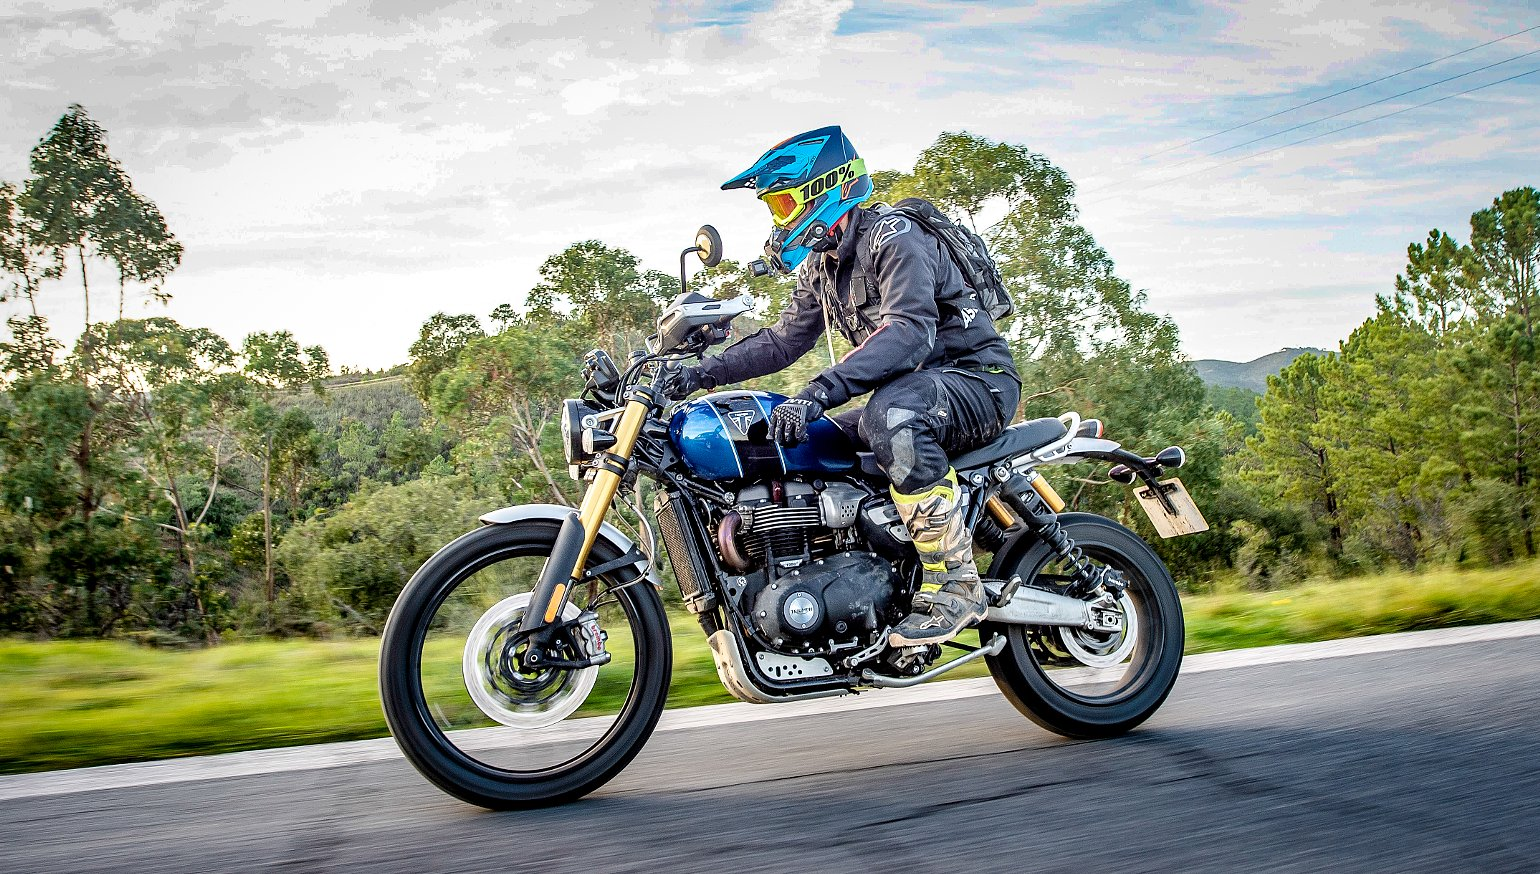 2019 Triumph Scrambler 1200 Xc And Xe First Ride Review Revzilla